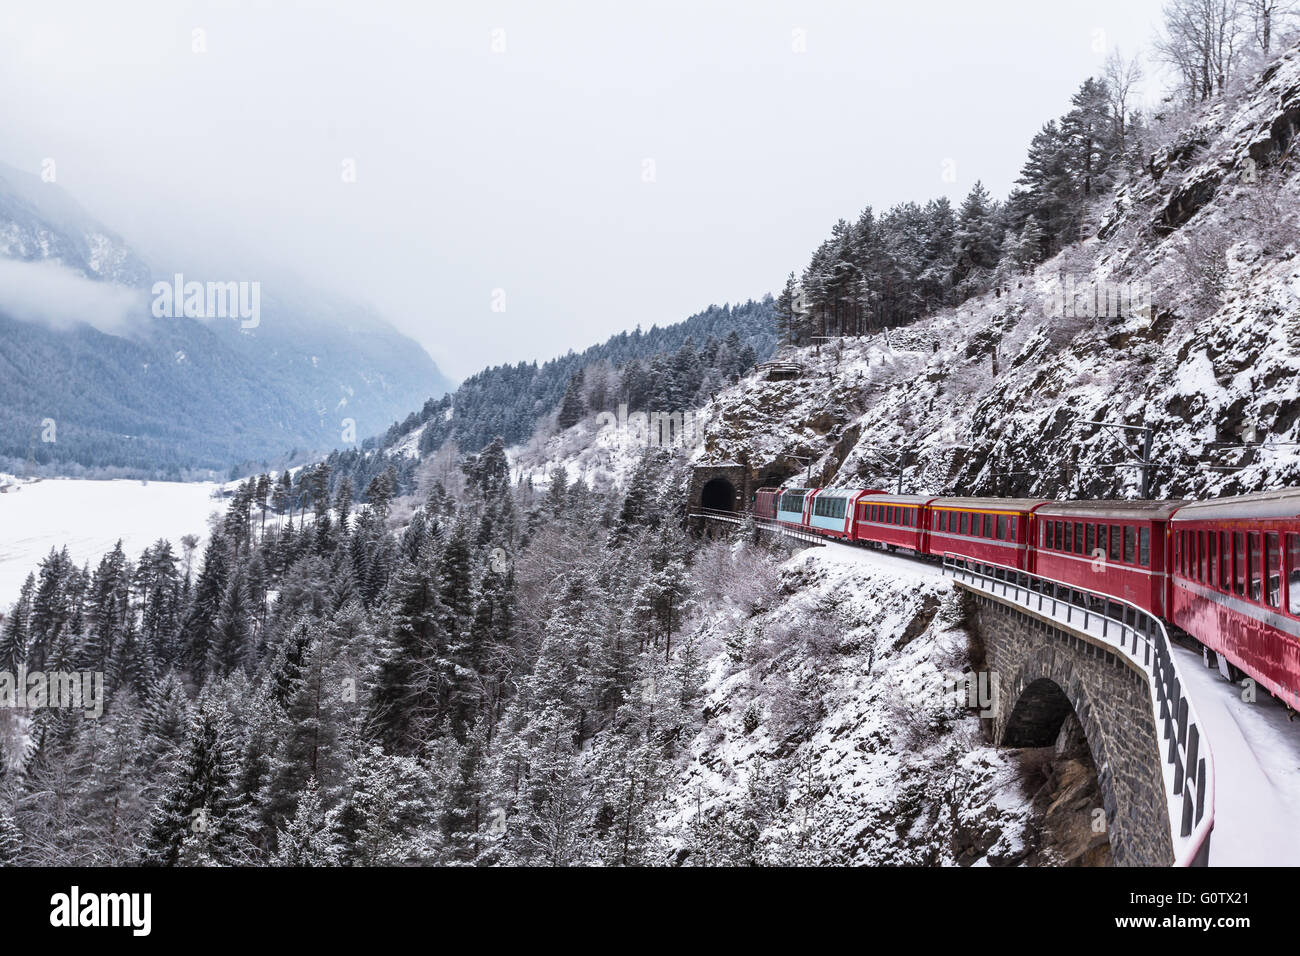 Famous sightseeing train in Switzerland, the Glacier Express in winter - Stock Image